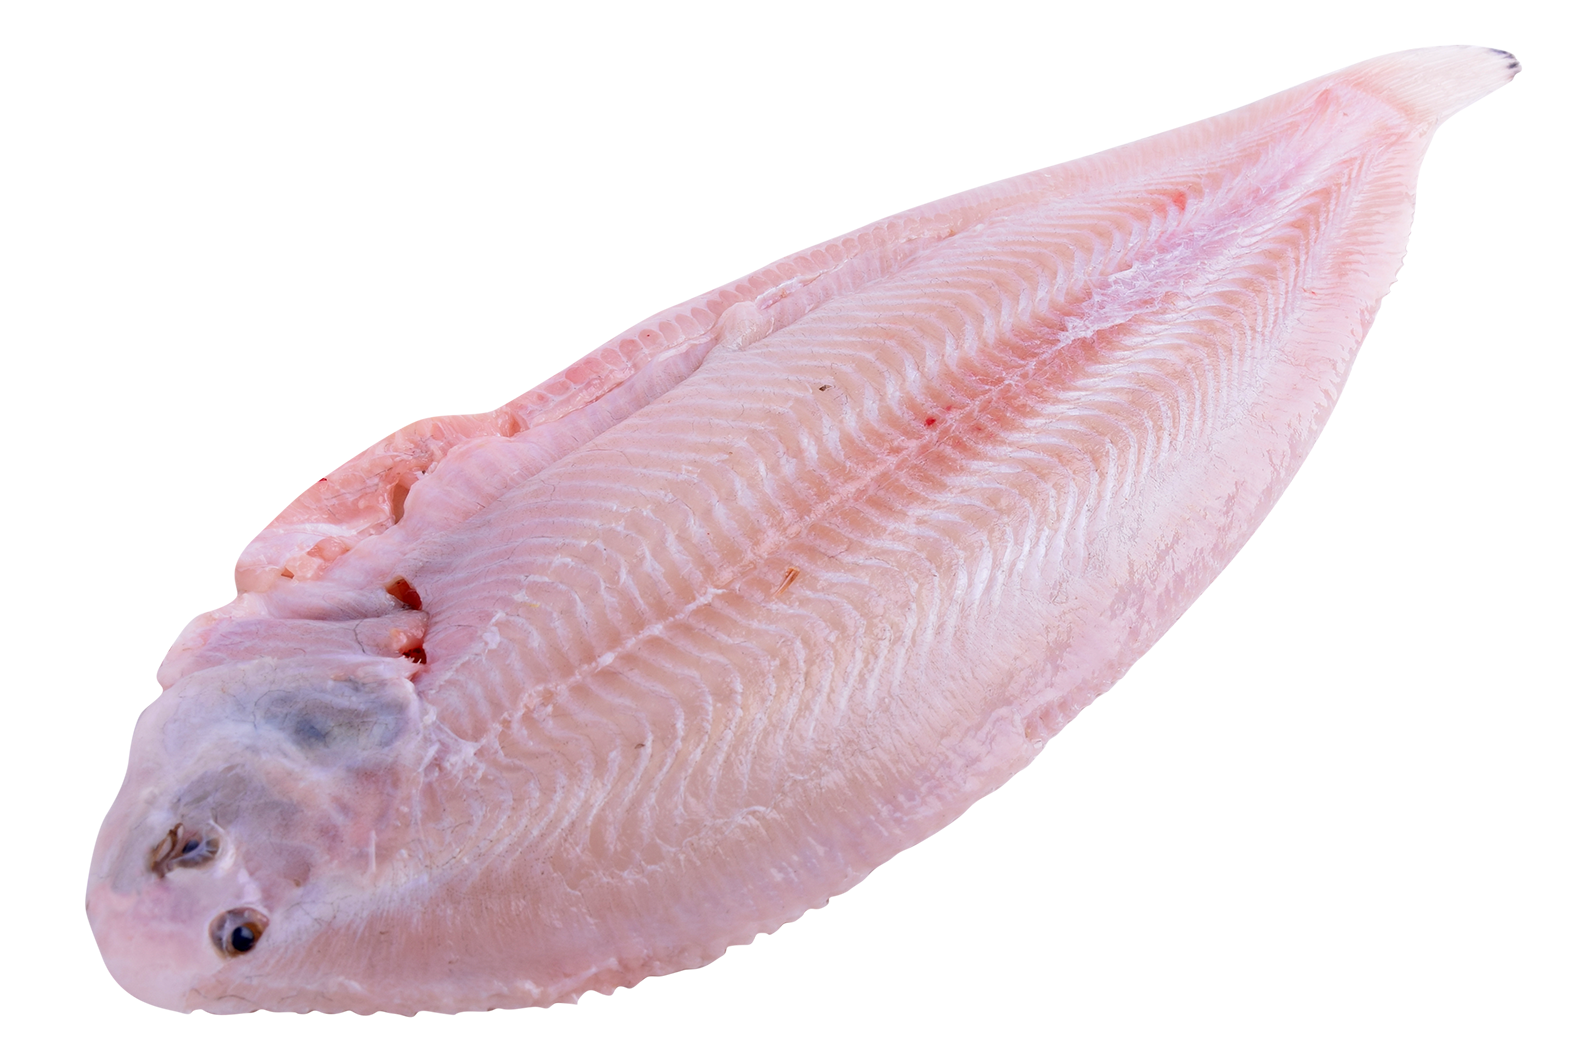 Productafbeelding DOVER SOLE SKINLESS SIZE 700-750GR